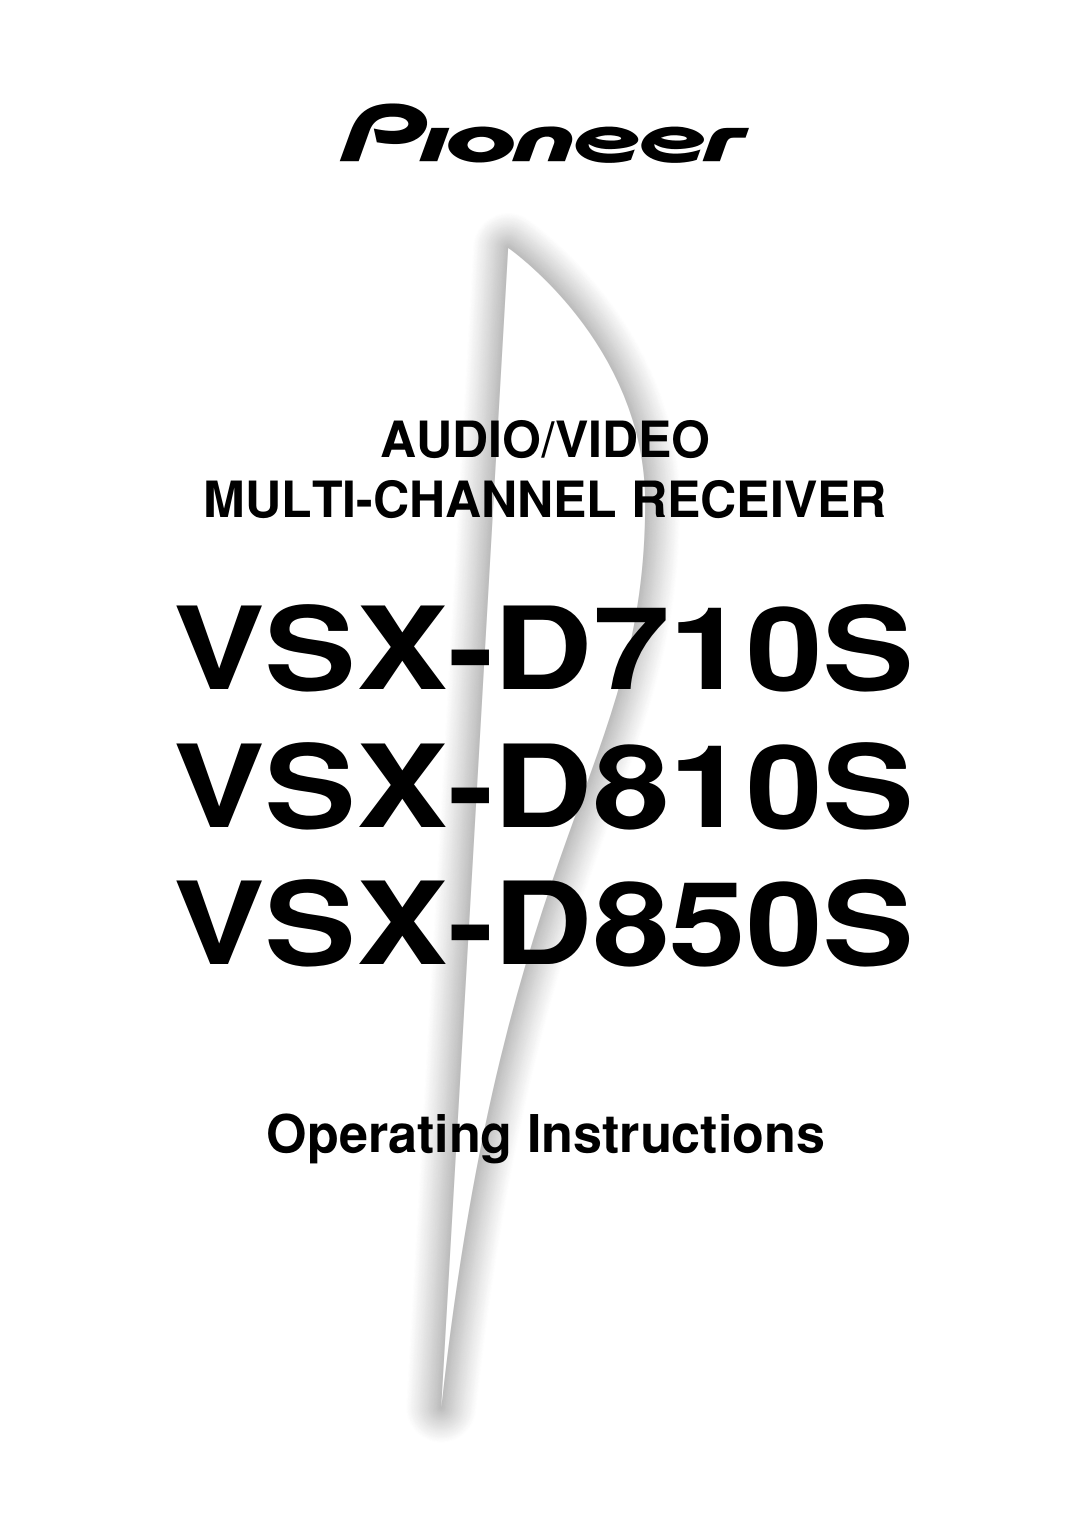 Download free pdf for pioneer vsx d710s receiver manual pdf for pioneer receiver vsx d710s manual fandeluxe Choice Image